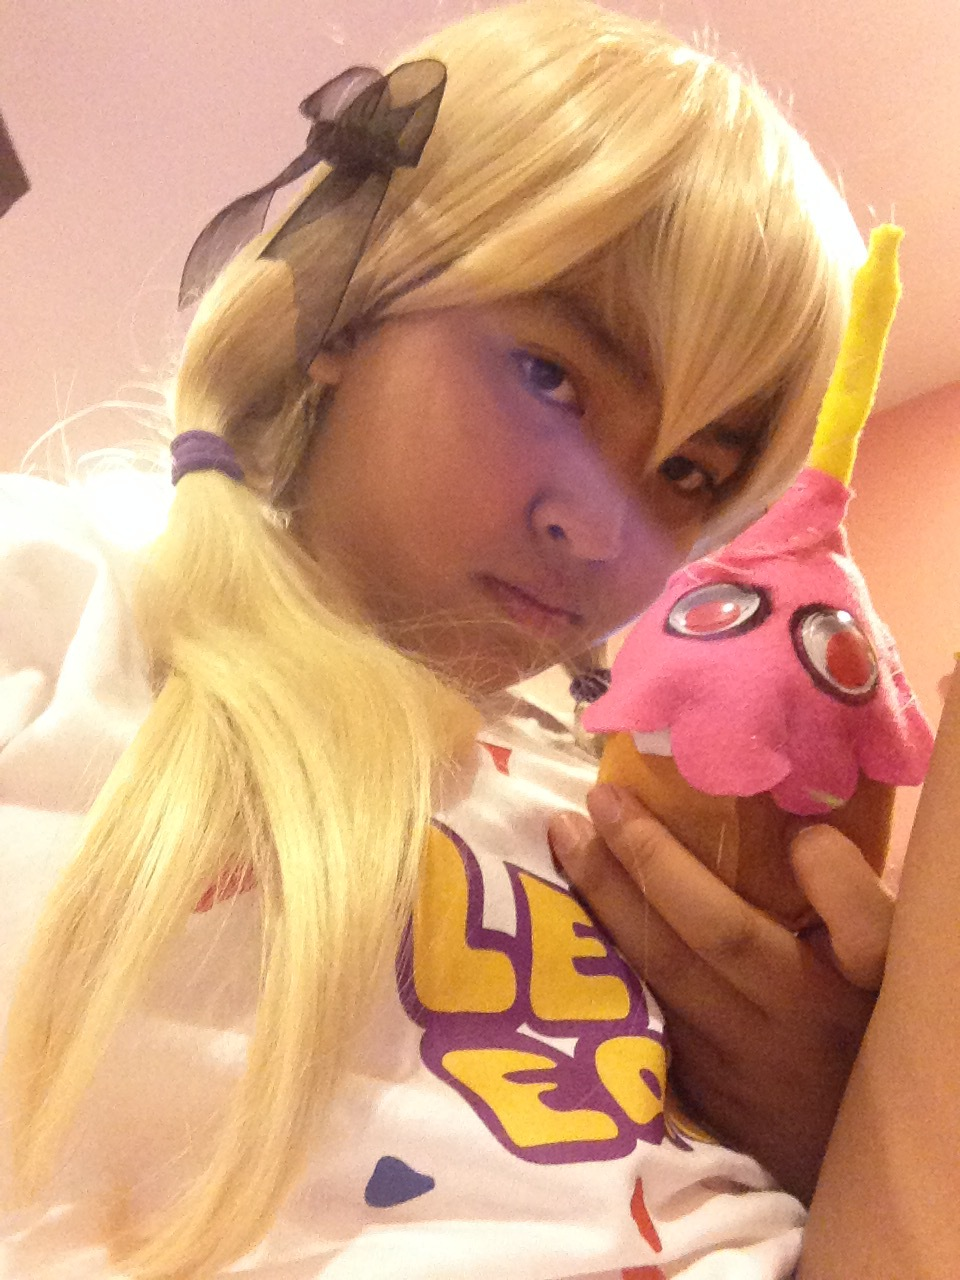 Fnaf chica the chicken cosplay wip cupcake plush by fourgirls919 on